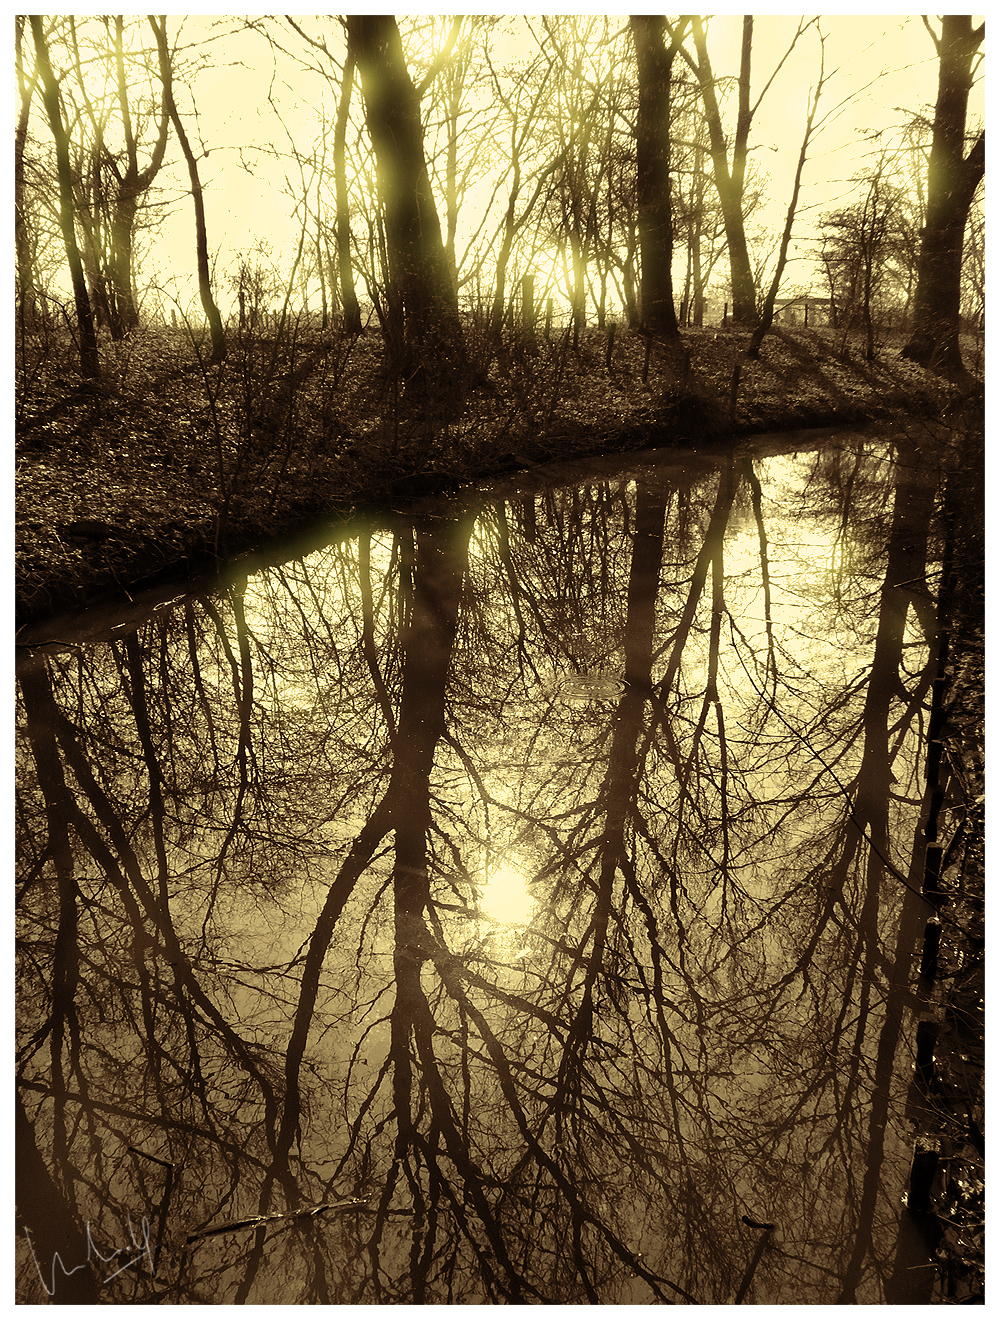 Sun, Water, Trees & Reflections